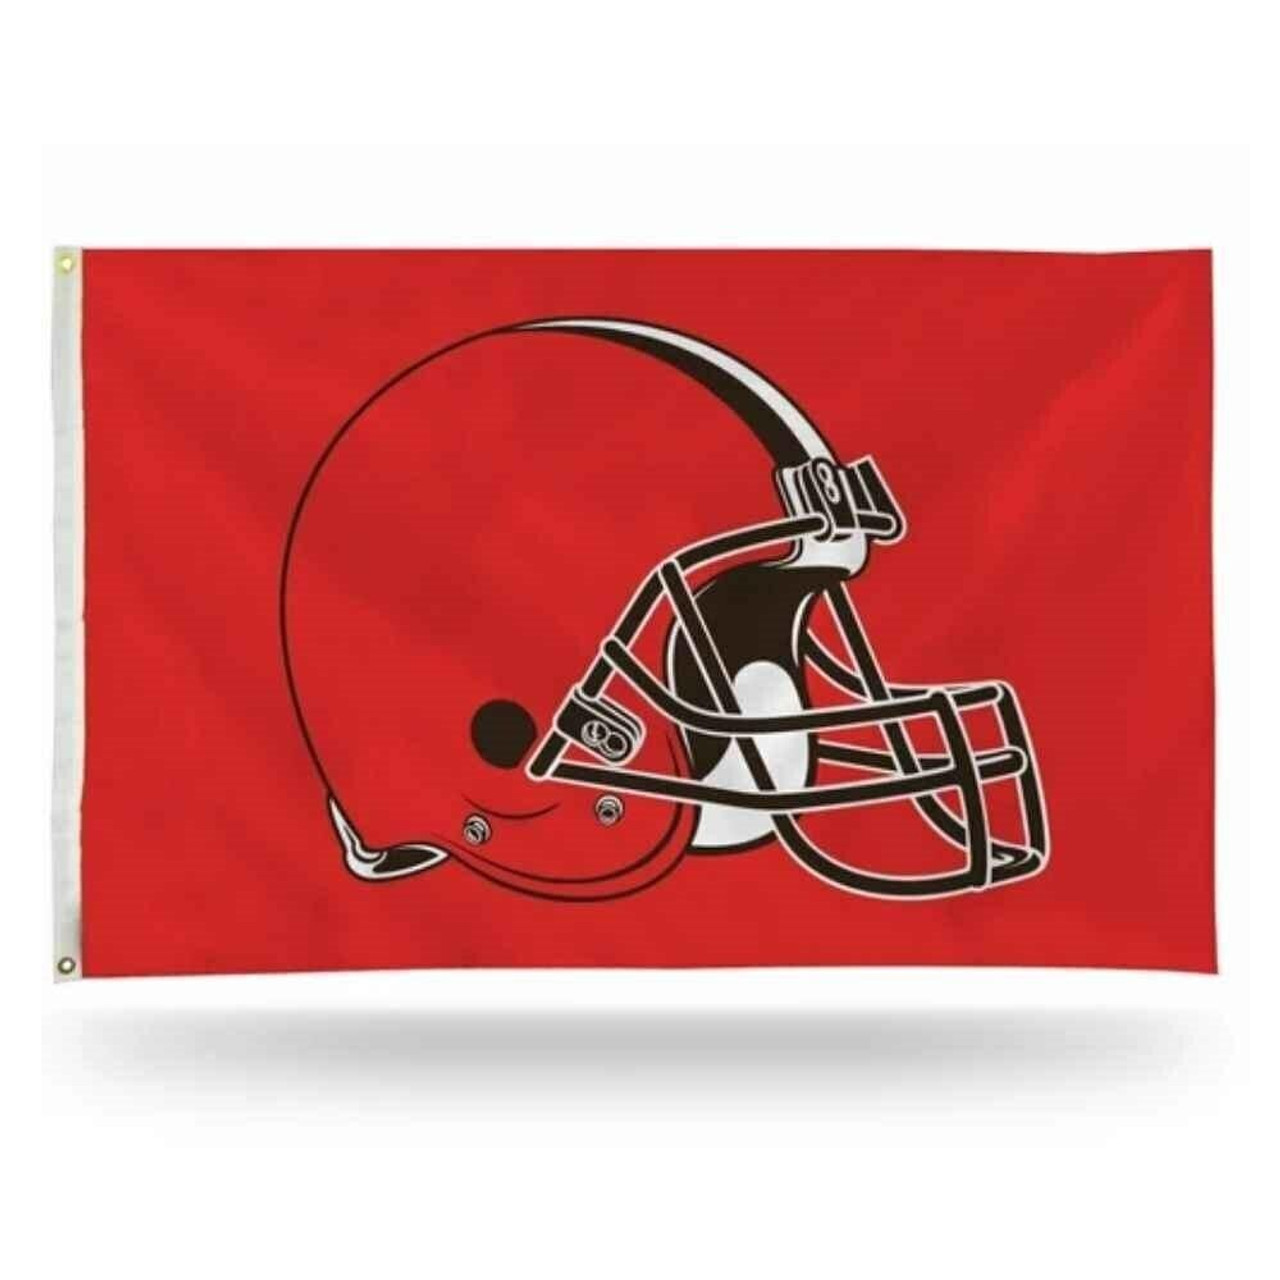 Red background with a red helmet outlined in black